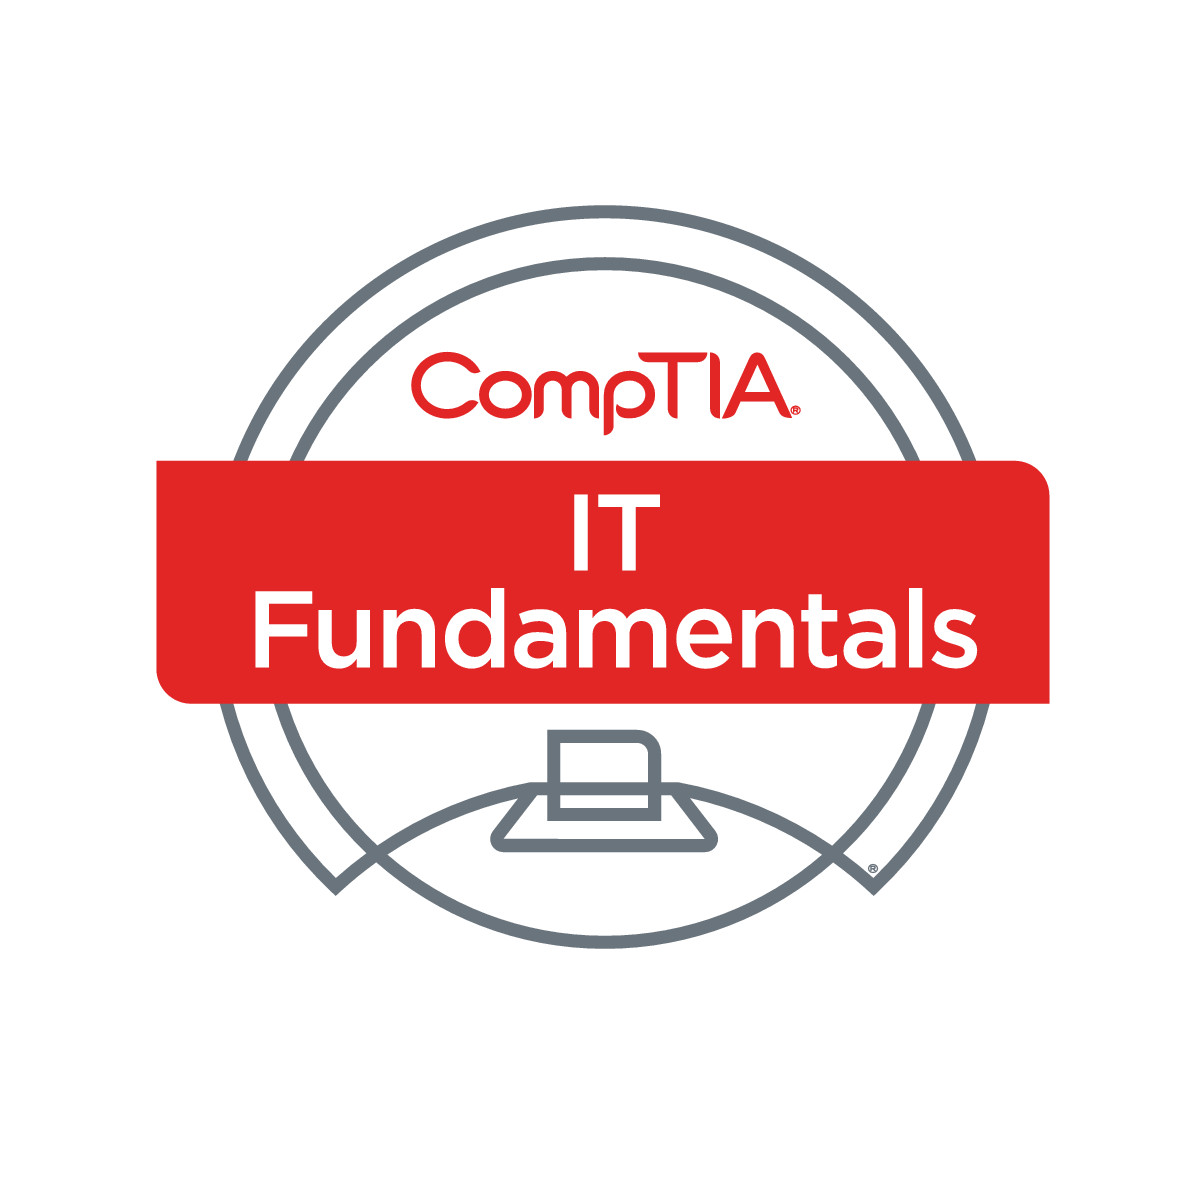 CompTIA IT Fundamentals Logo